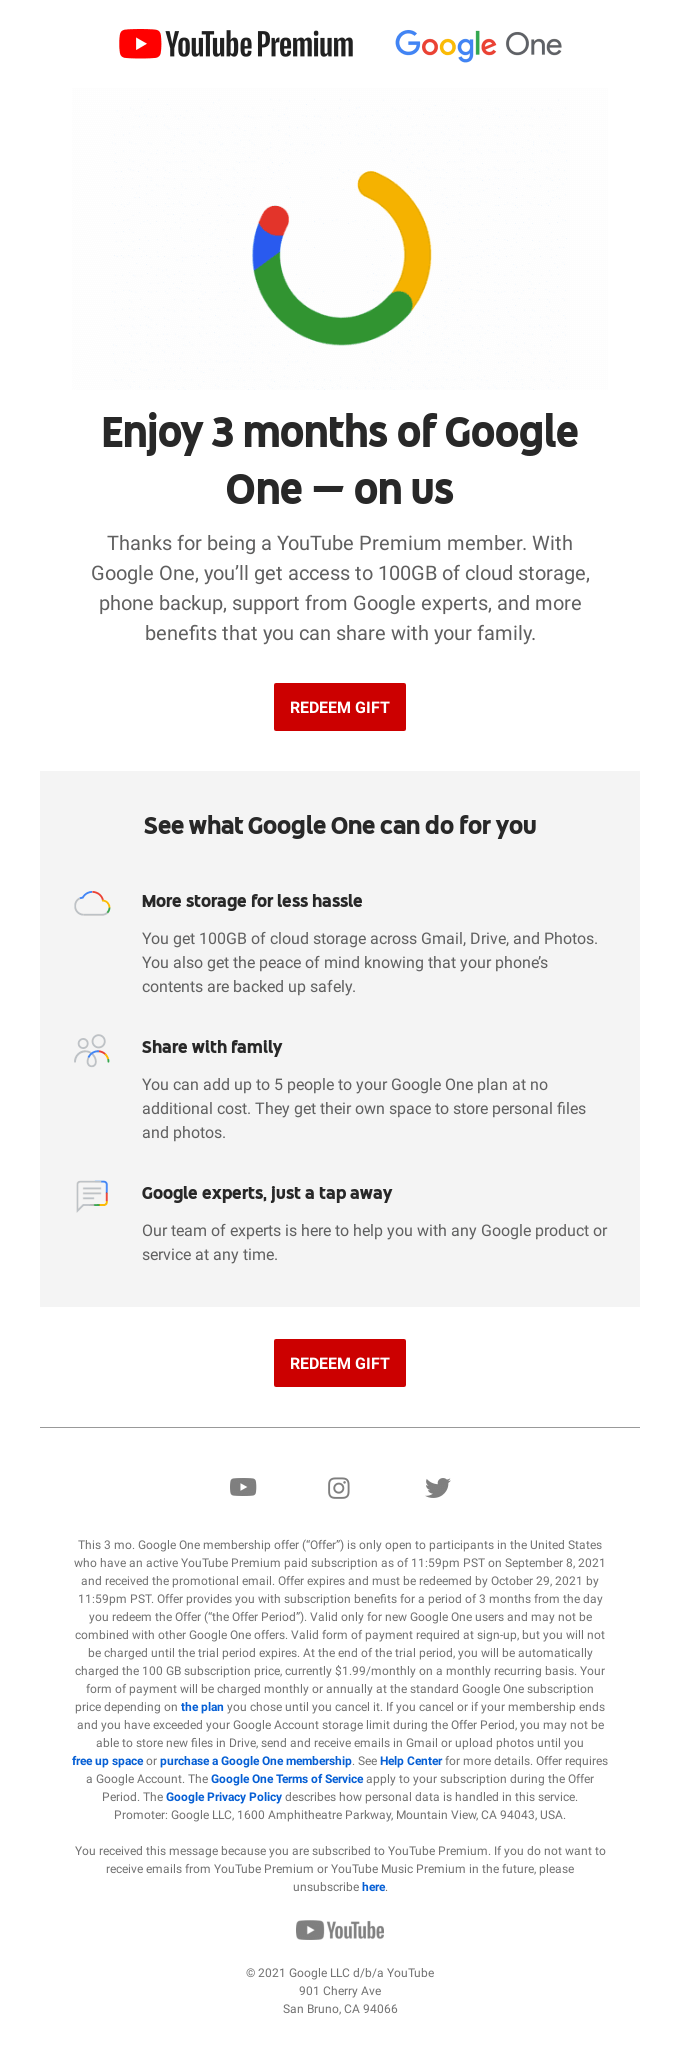 Your Google One gift is waiting